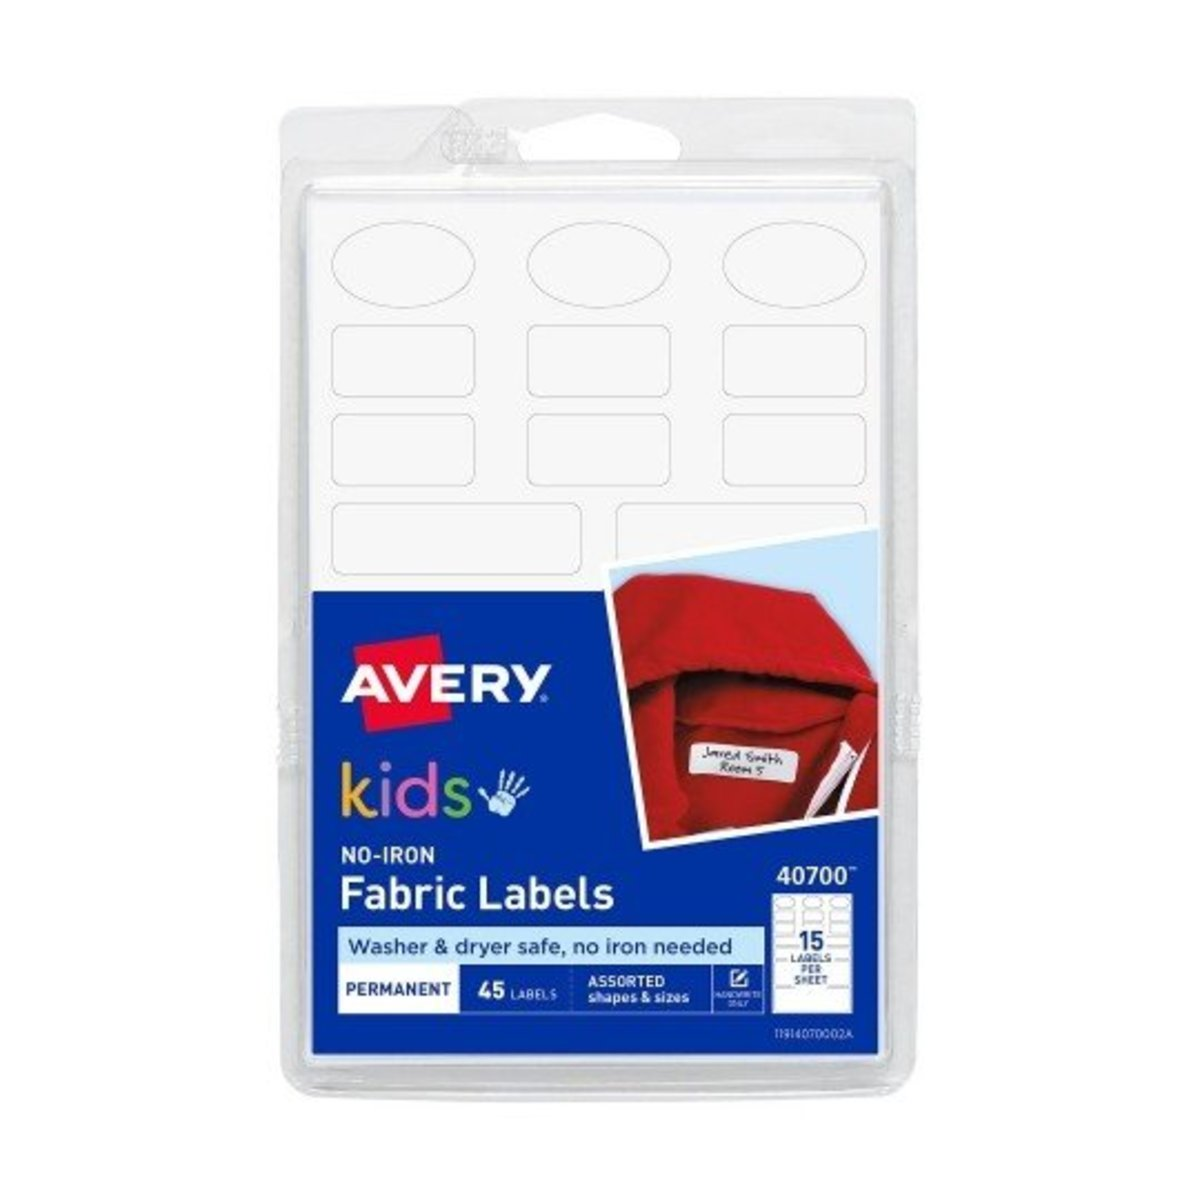 Avery - No-Iron Fabric Labels 40700